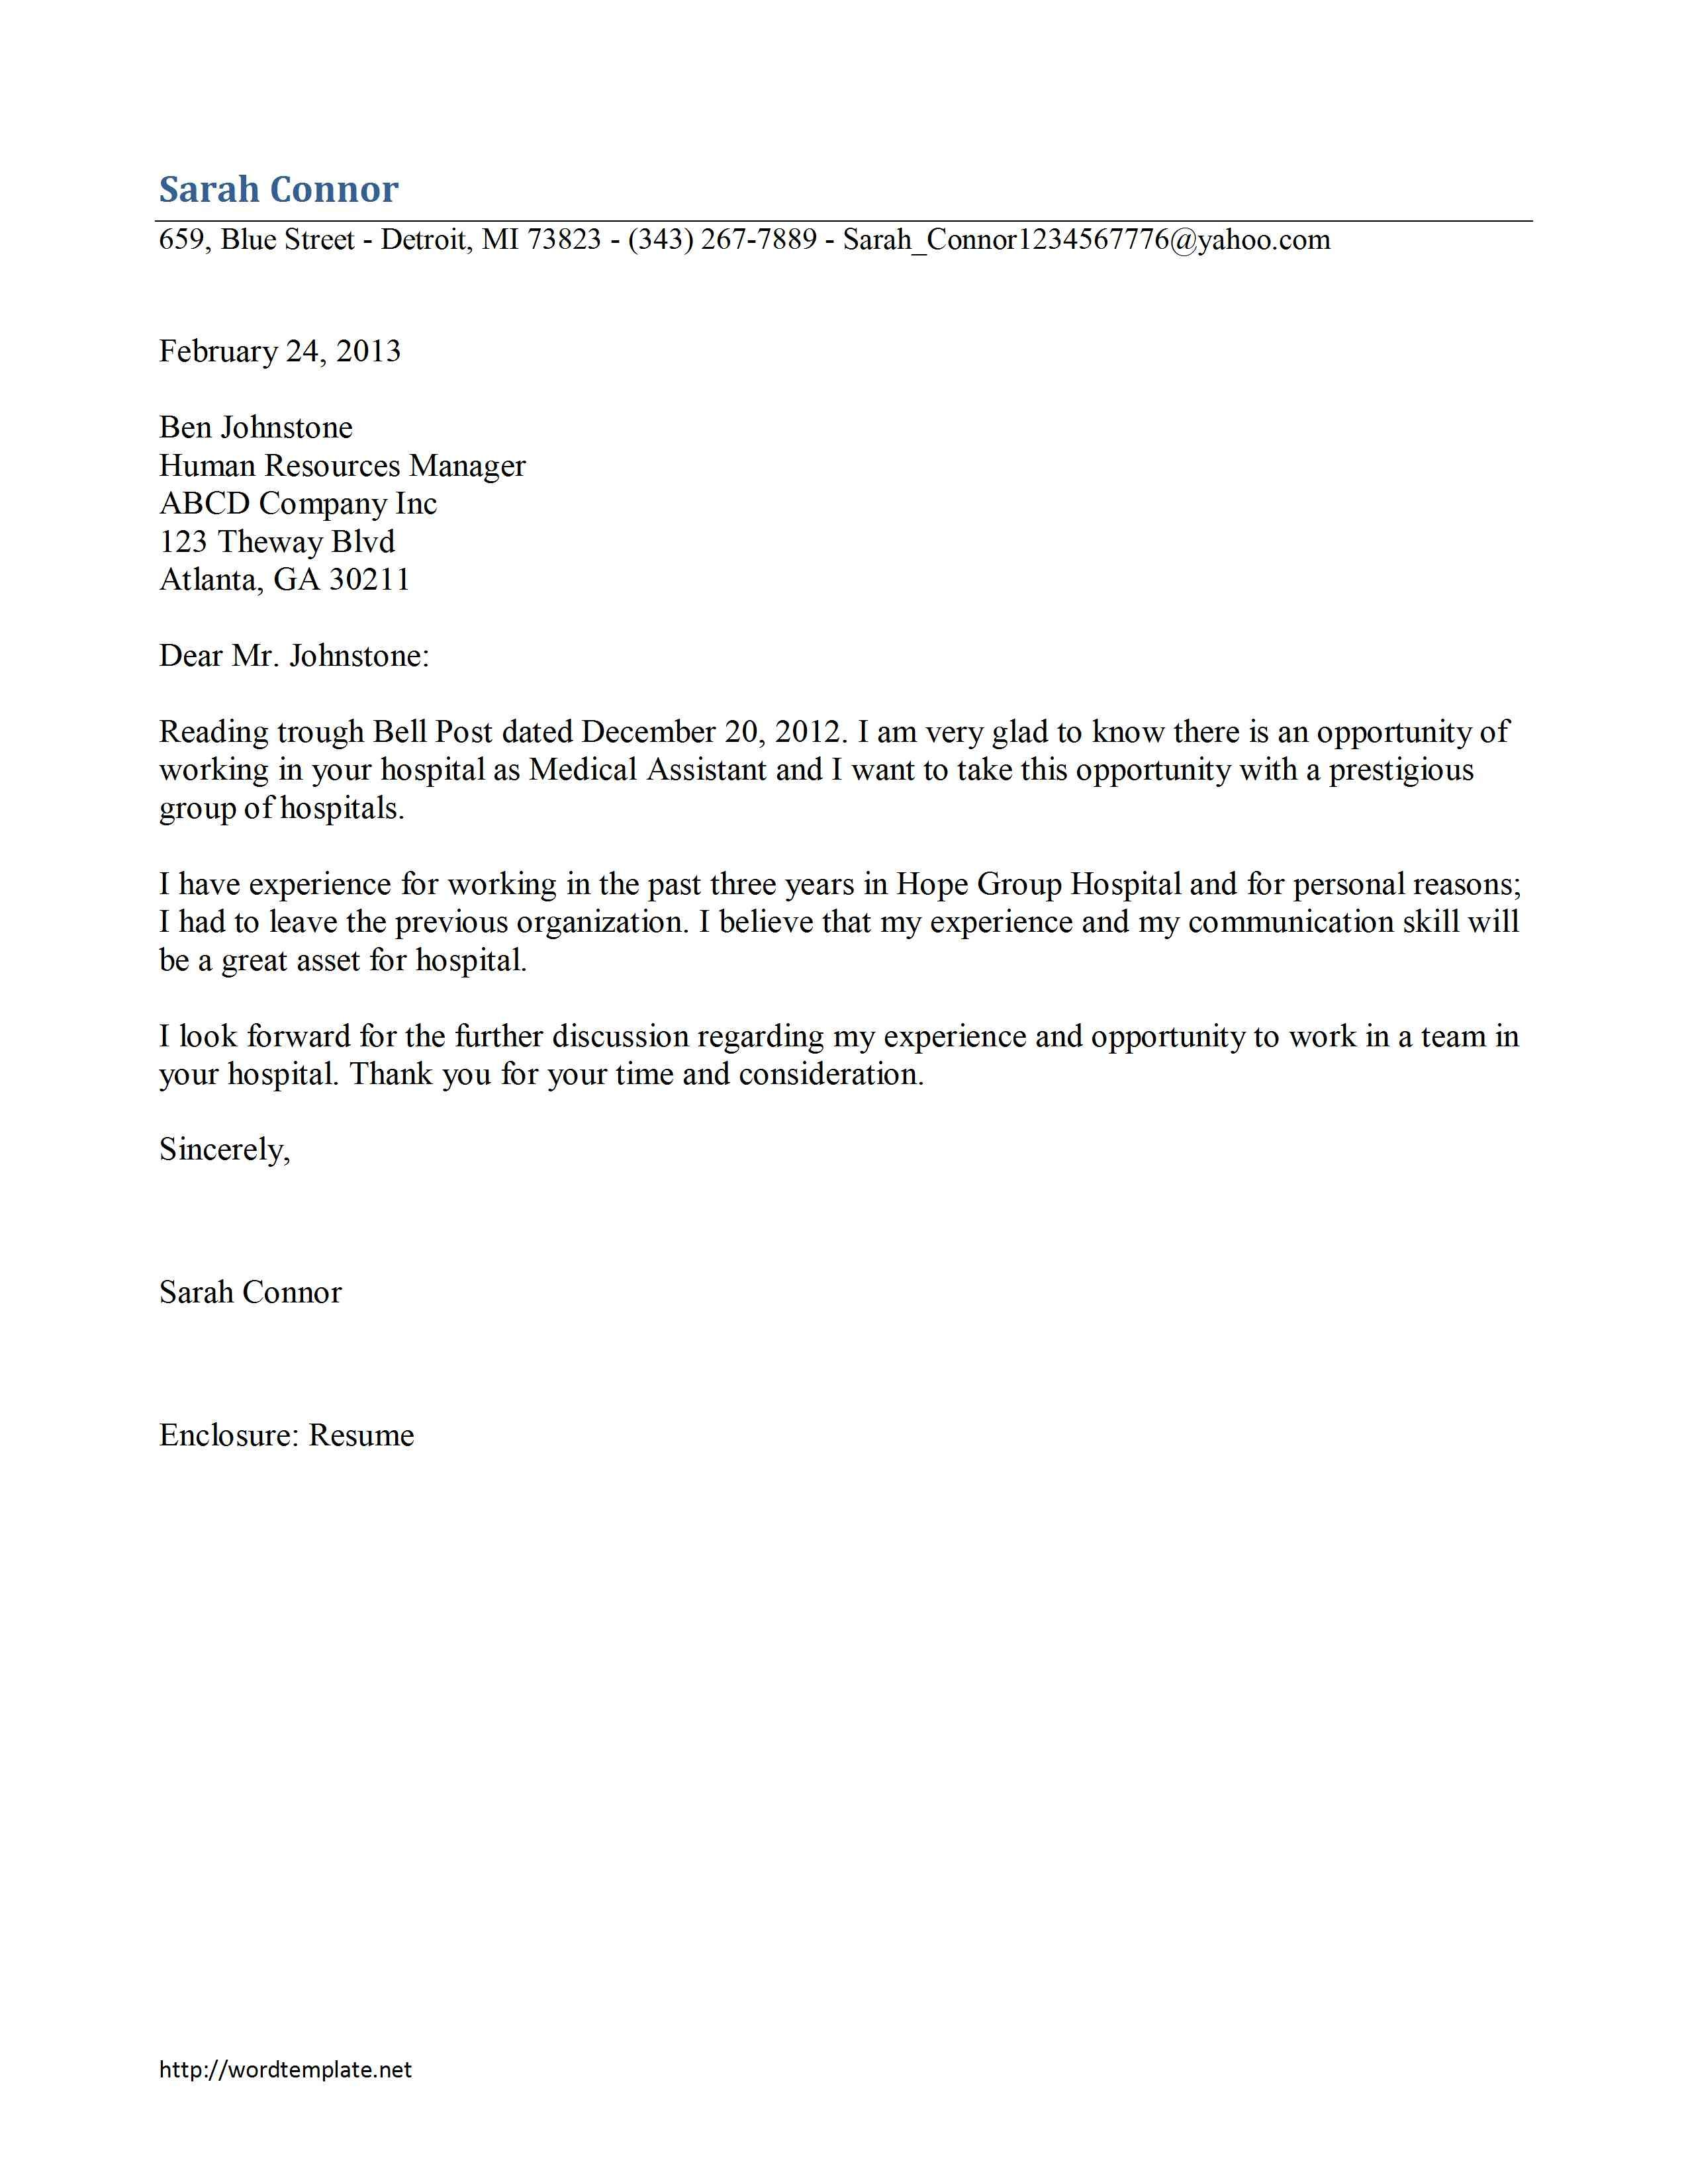 Medical Assistant Cover Letter Samples Stark Houseofstrauss Co